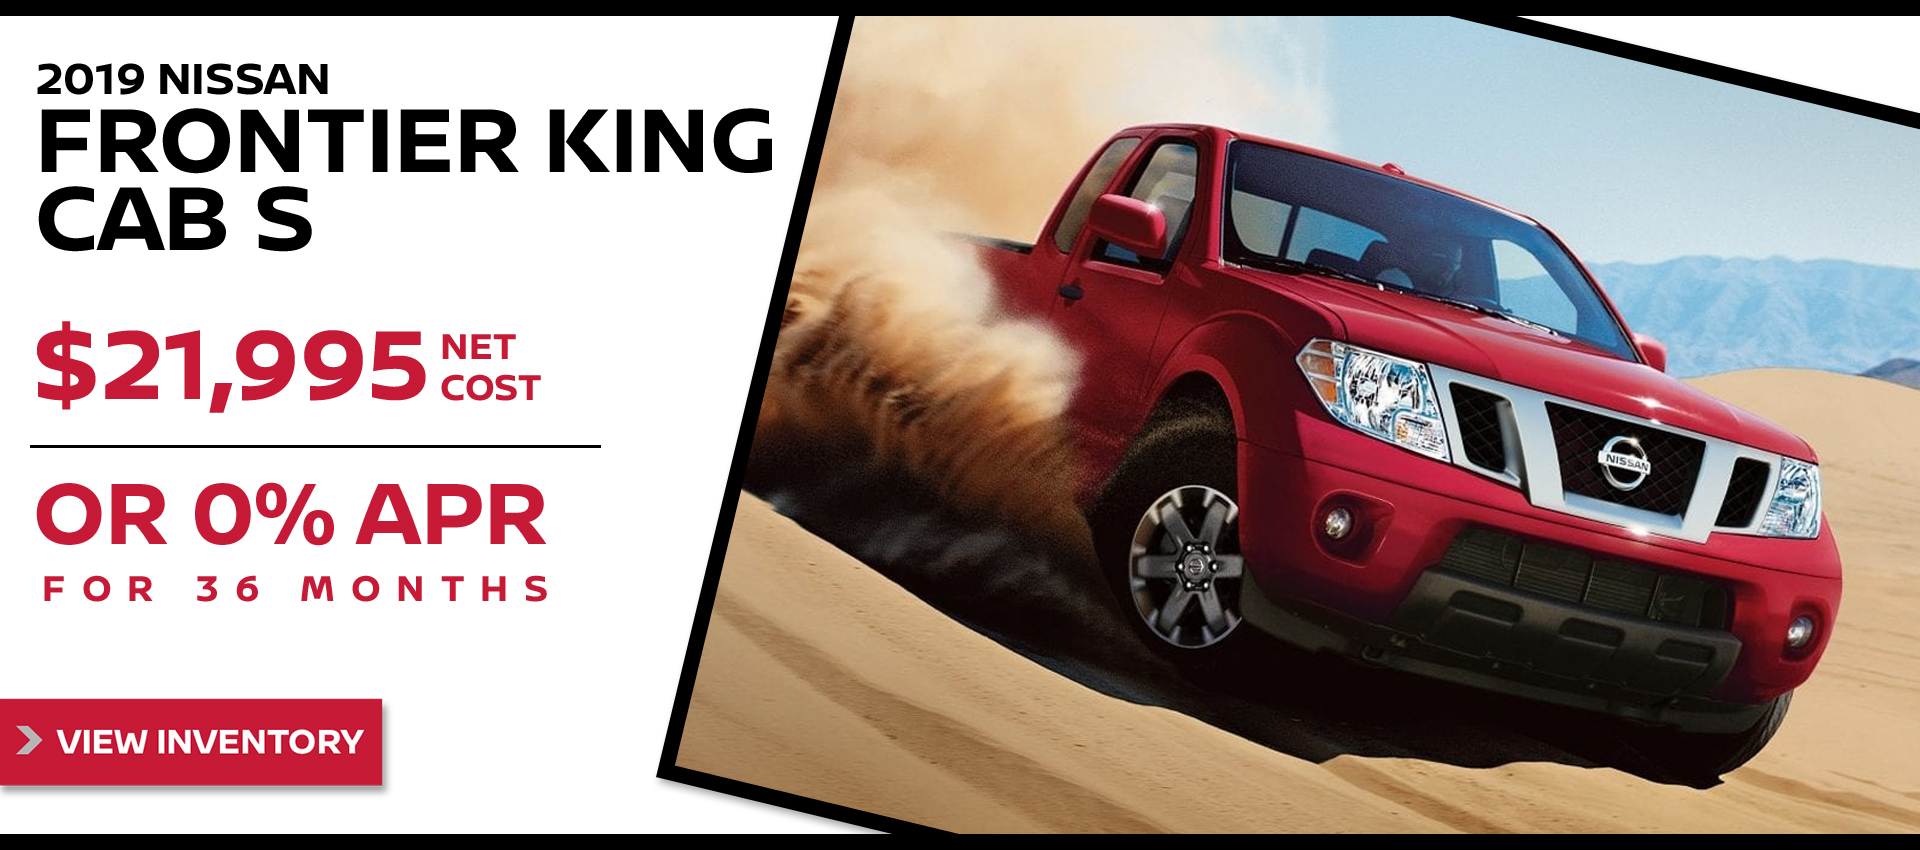 Mossy Nissan - Nissan Frontier $21,995 Purchase HP